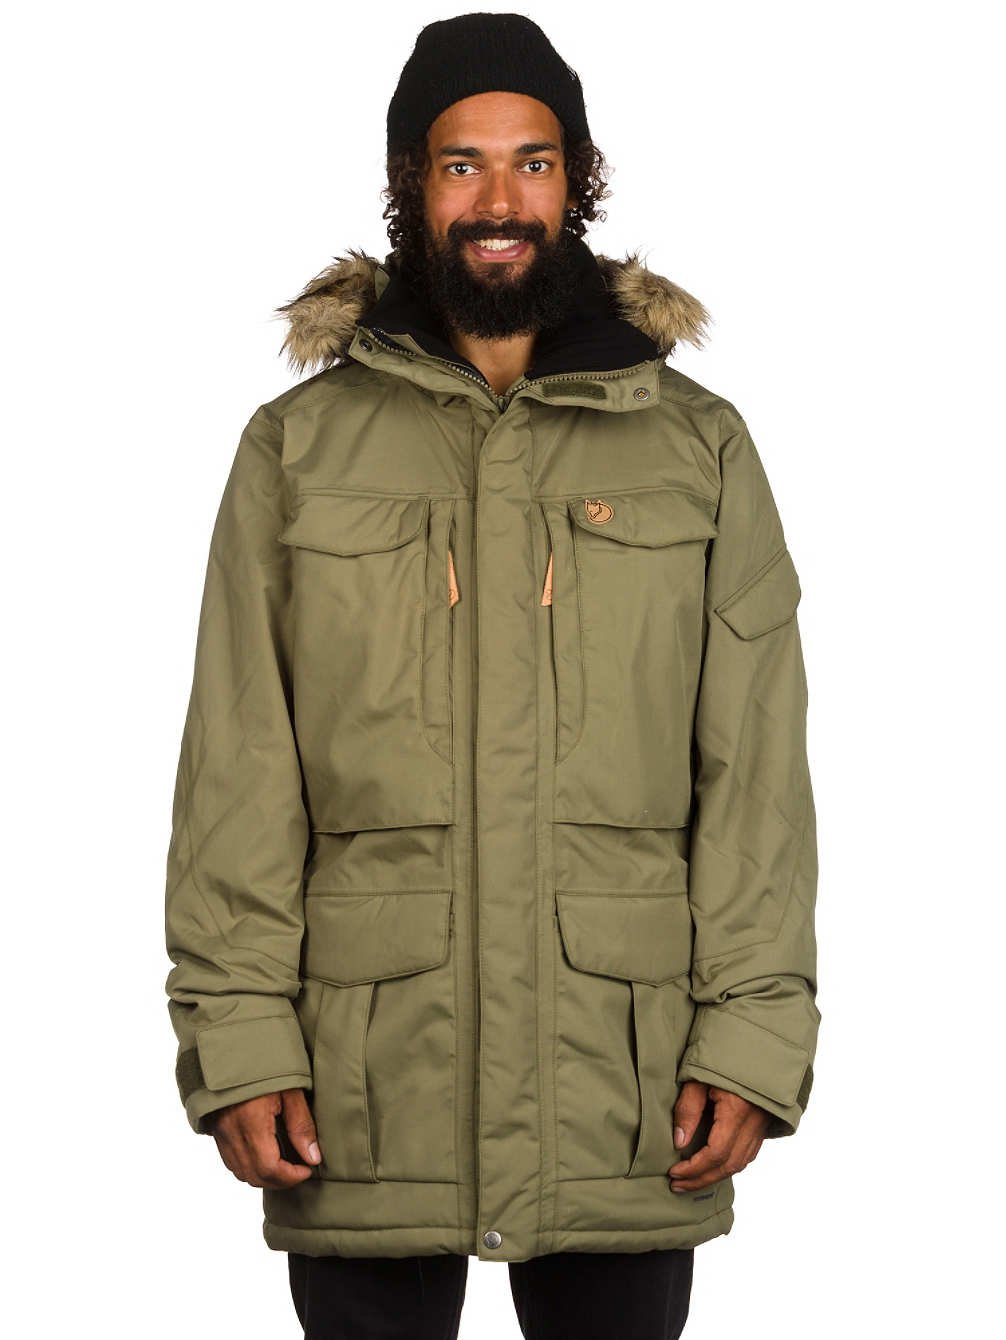 Fjallraven - Men's Yupik Parka, Green, S